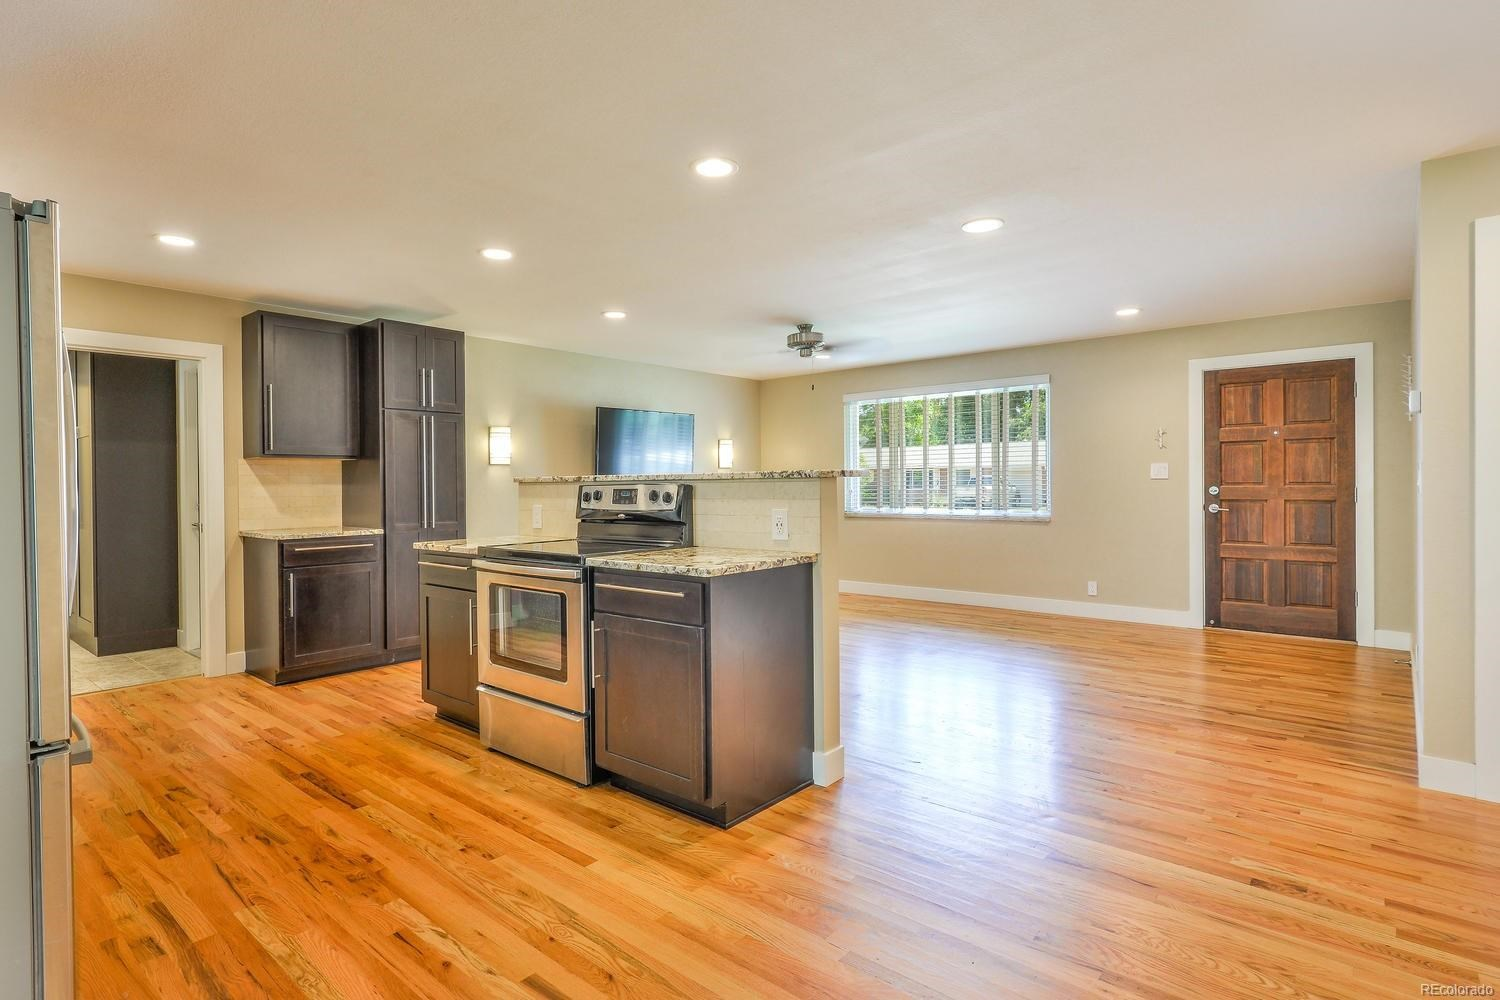 MLS# 1645833 - 11 - 1924 Springfield Drive, Fort Collins, CO 80521